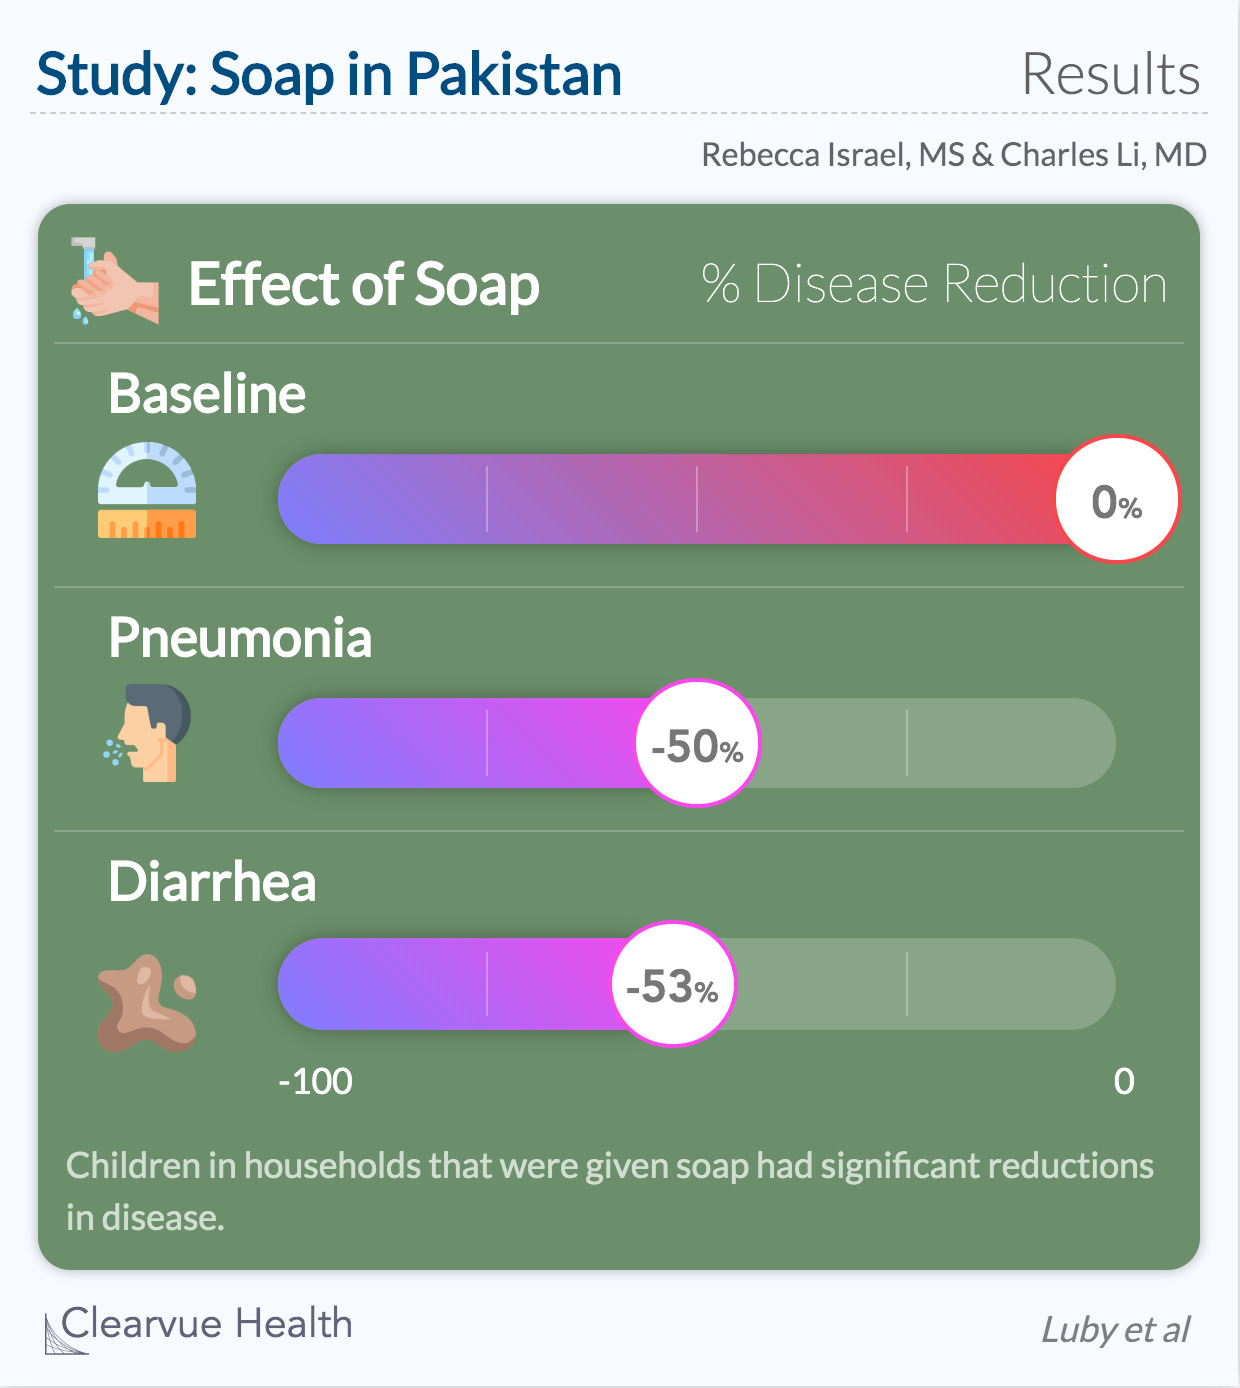 Hand washing and diarrhea and pneumonia data